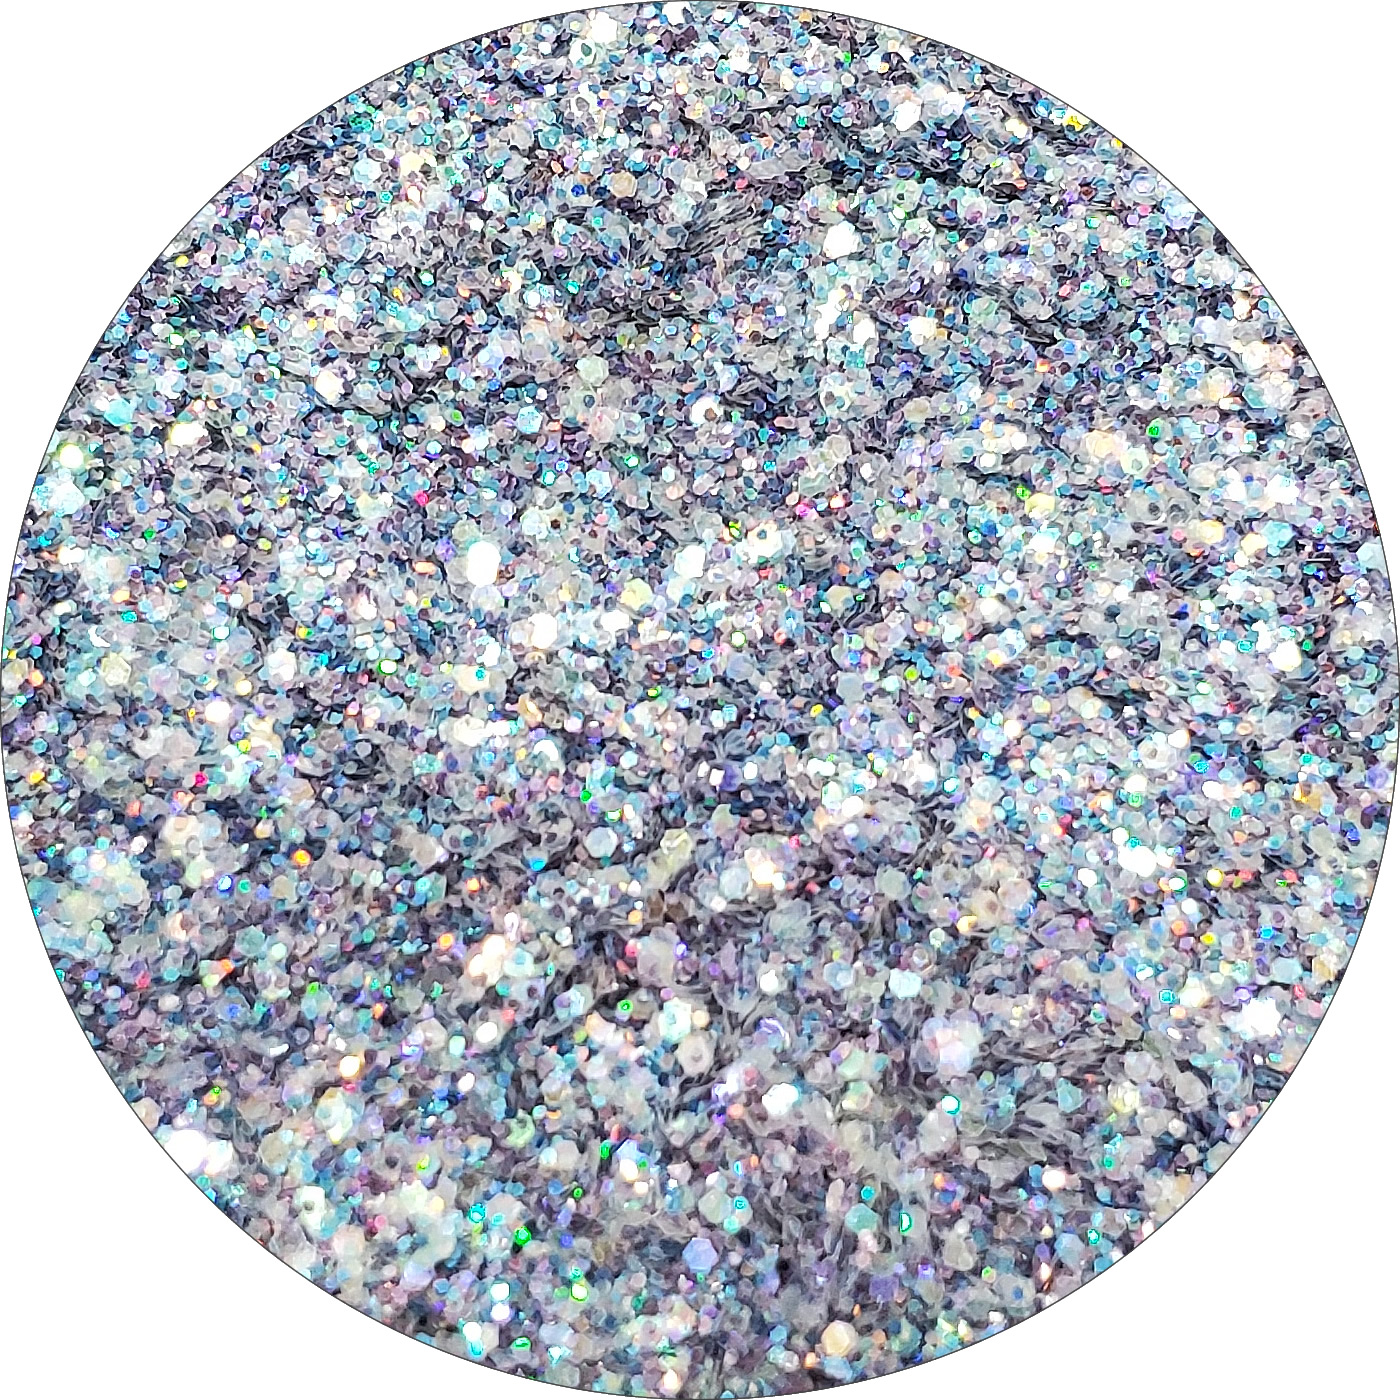 Crystalarium : Twisted Glitter Cosmetic Mix